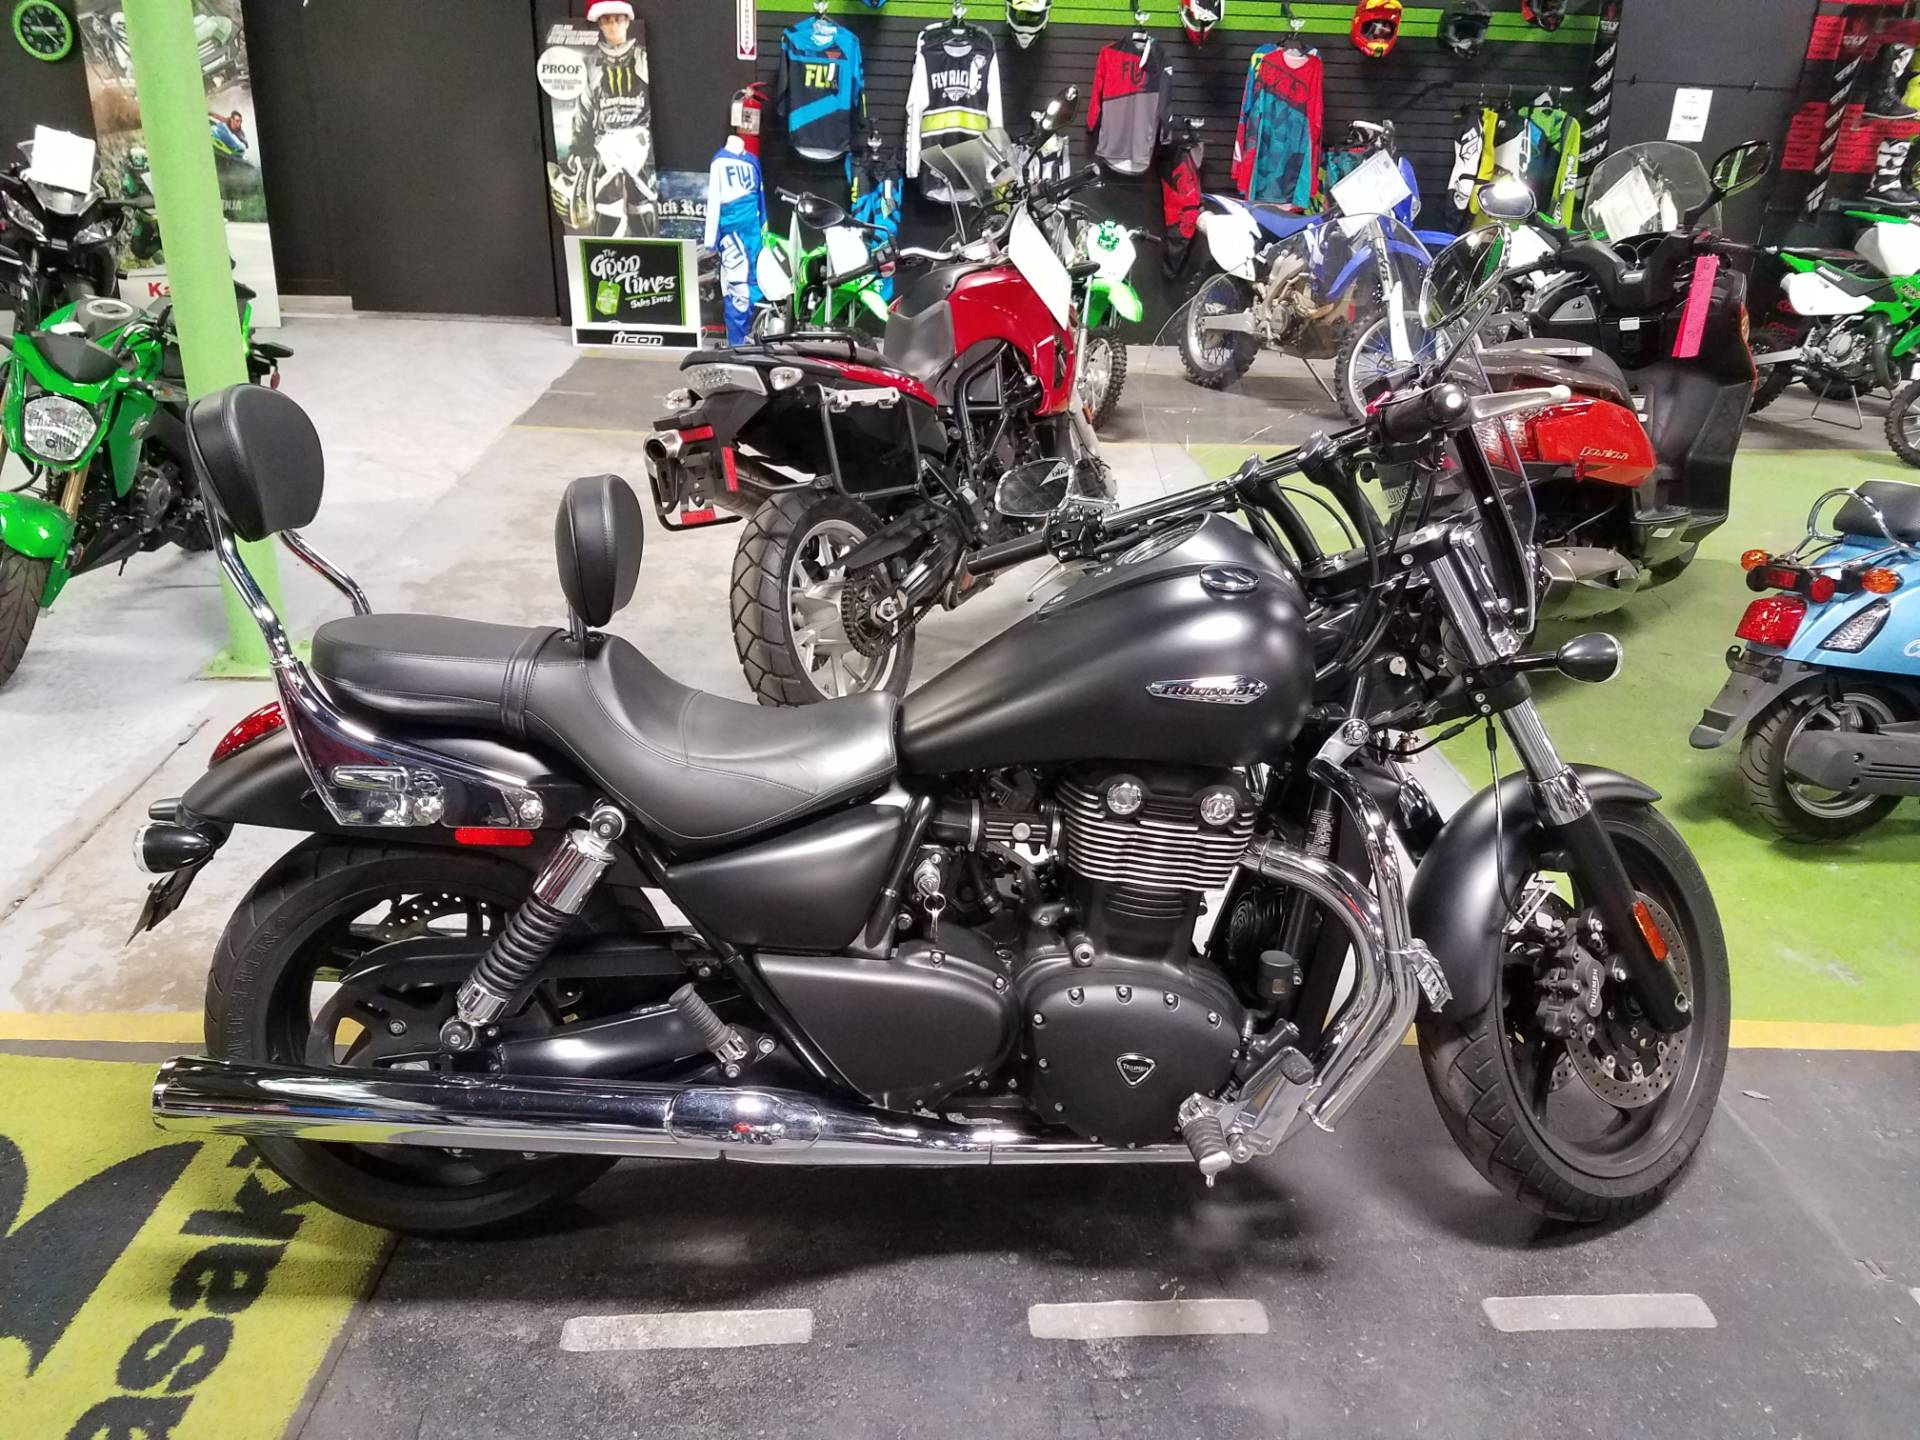 Used 2012 Triumph Thunderbird Storm ABS Motorcycles in Kingsport, TN